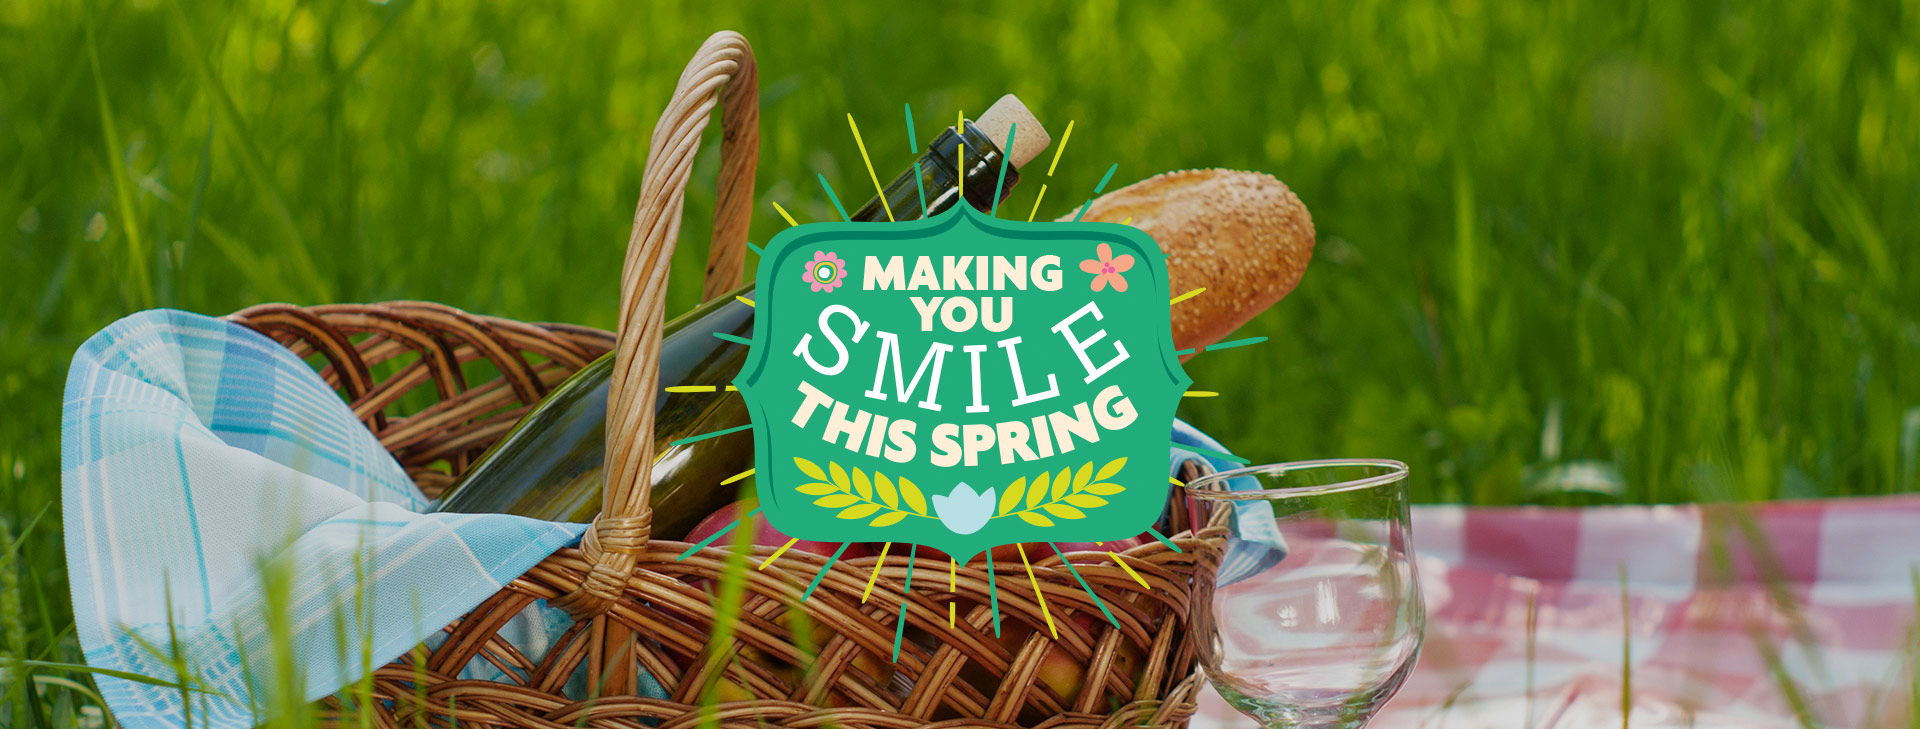 Making you smile this spring